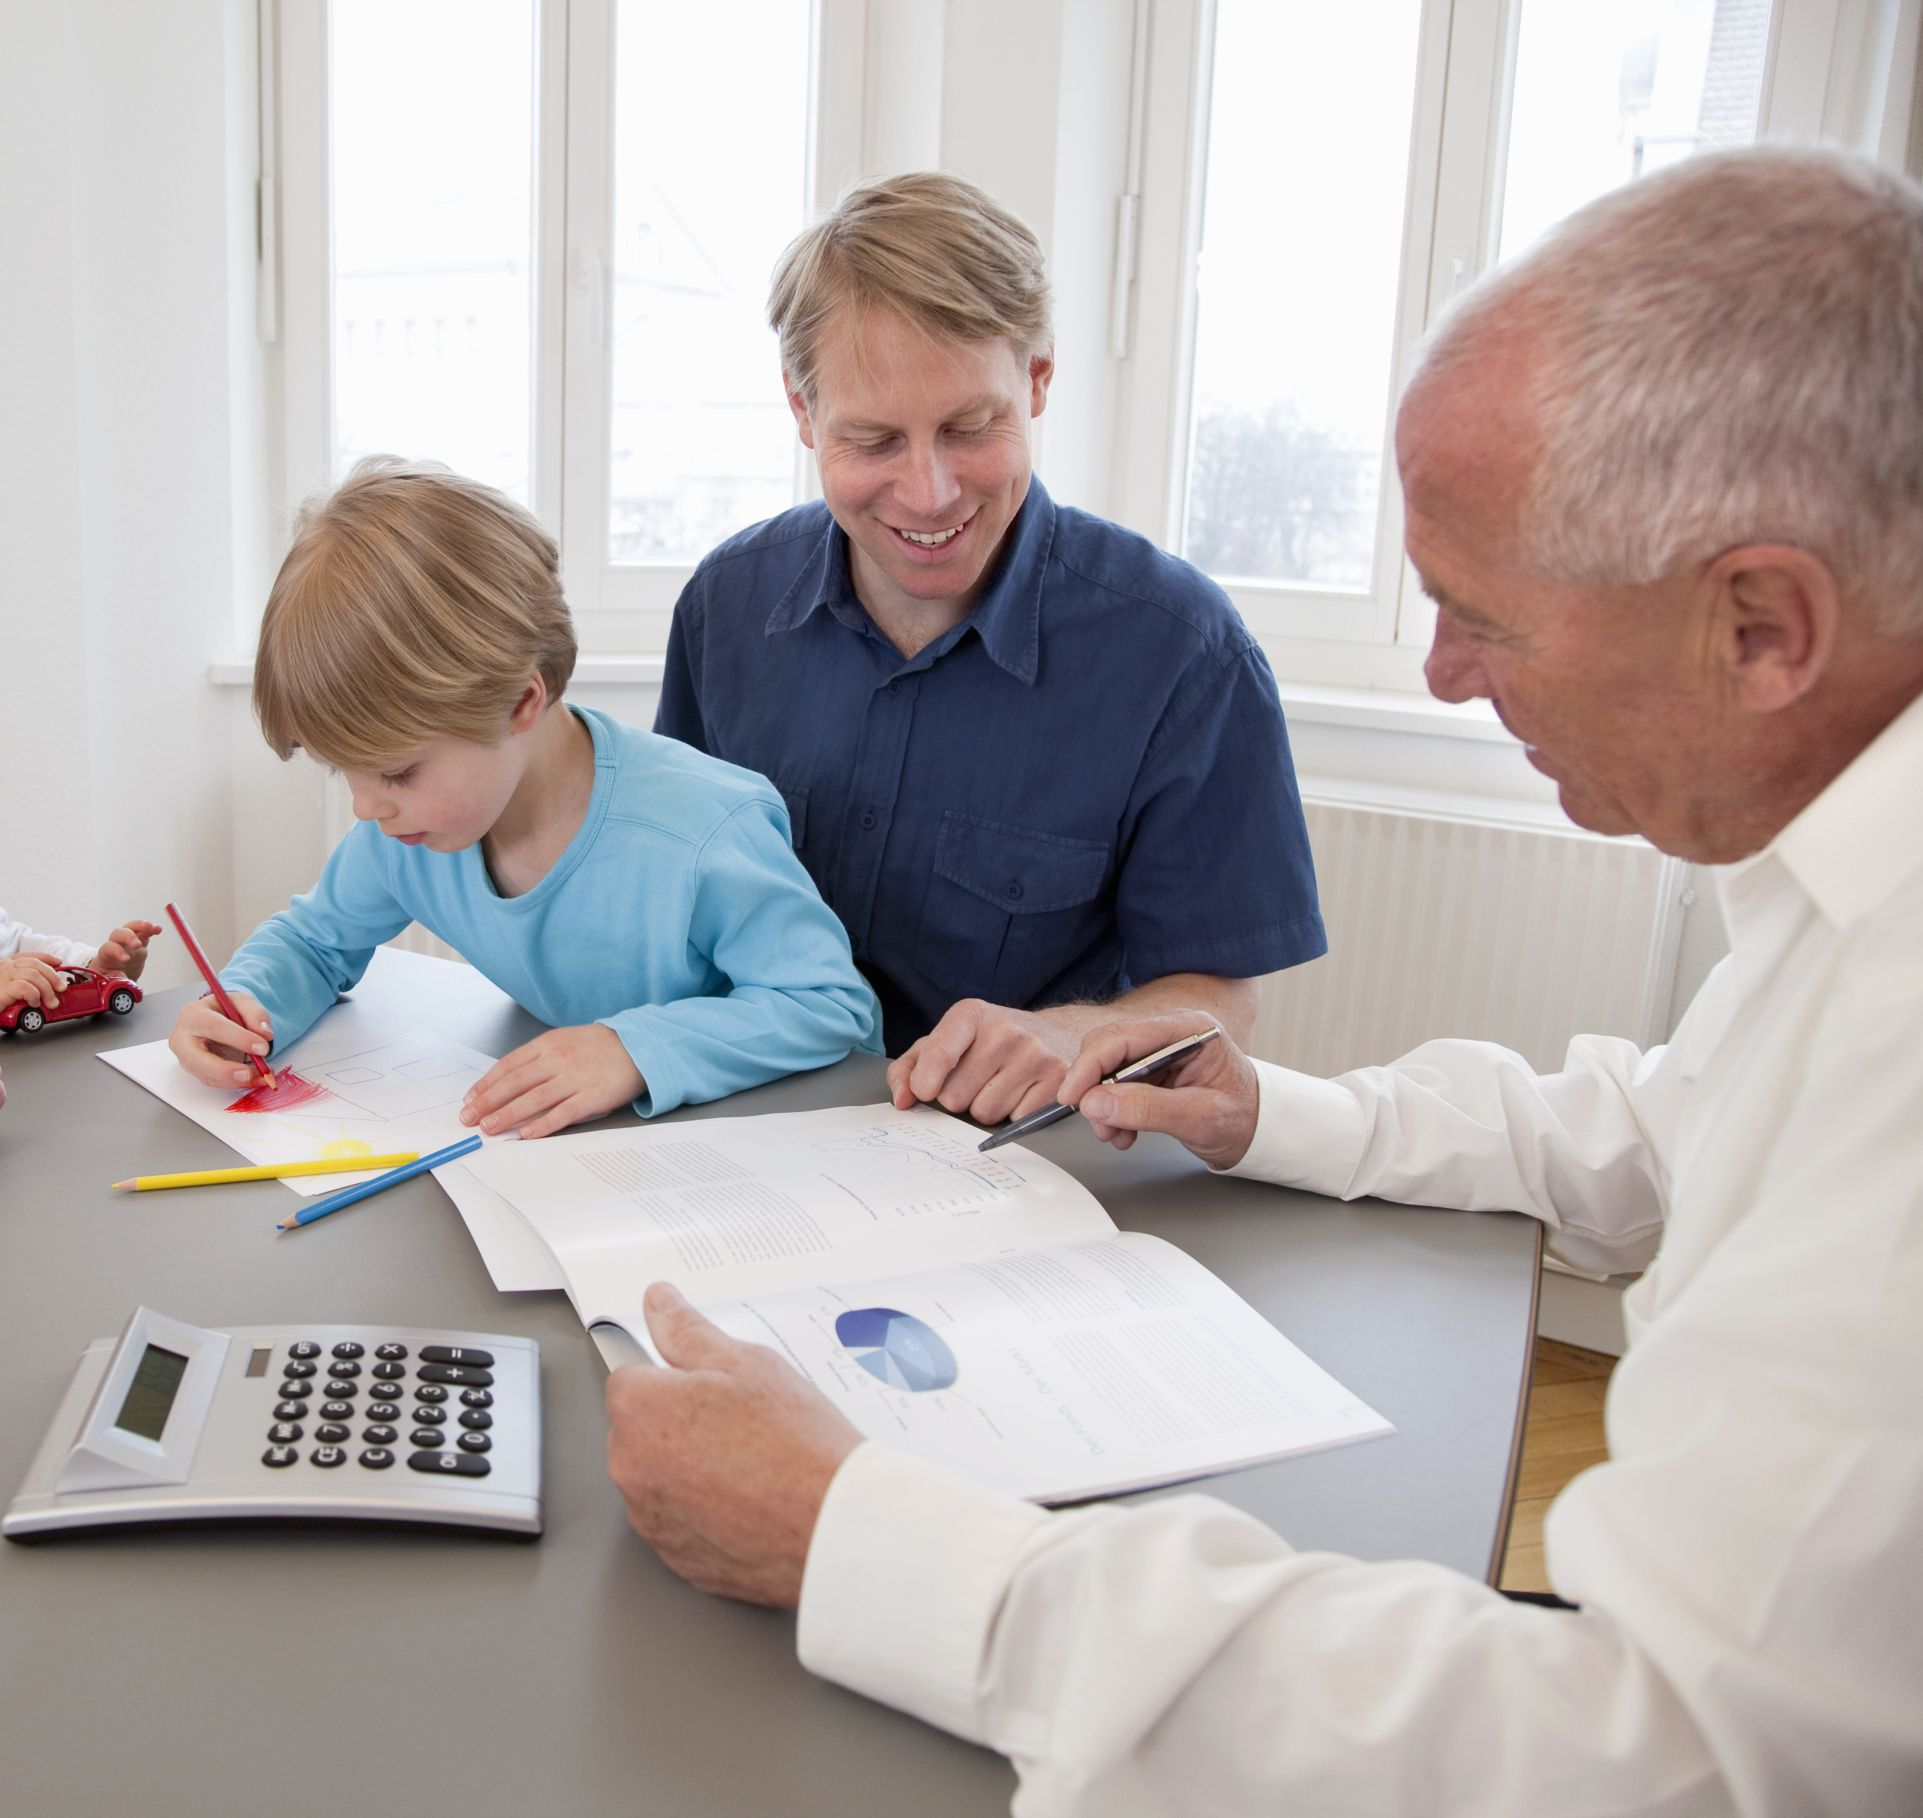 The Ultimate Guide to a Roth IRA for Kids